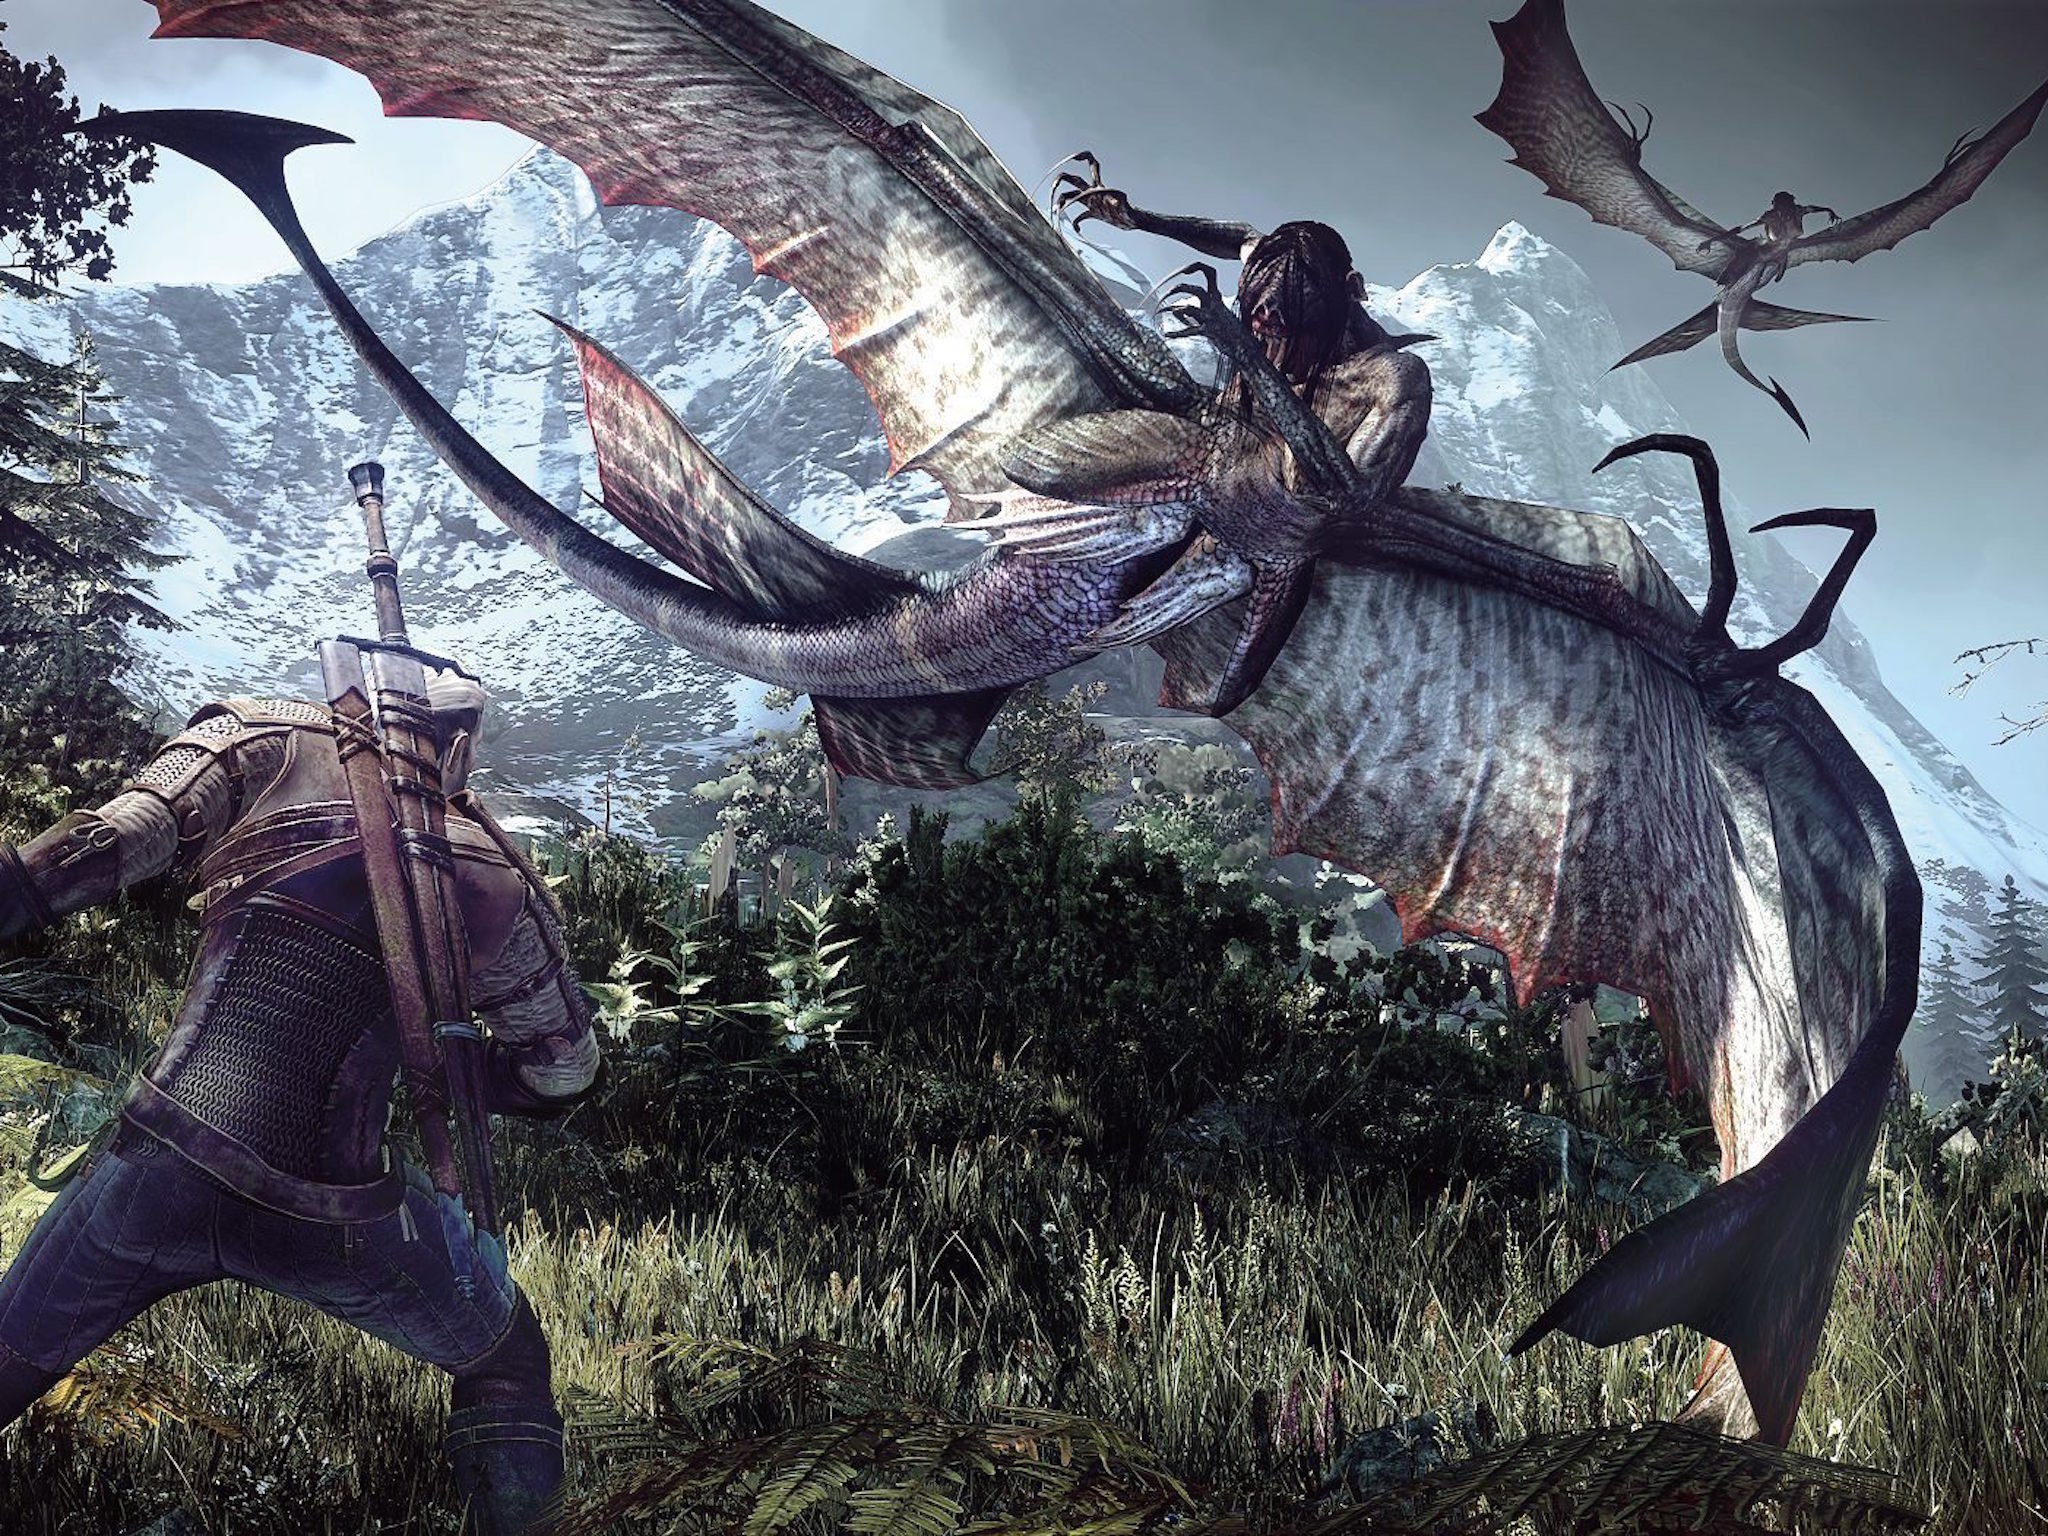 witcher 3-geralt fighting monster wallpaper | hd images